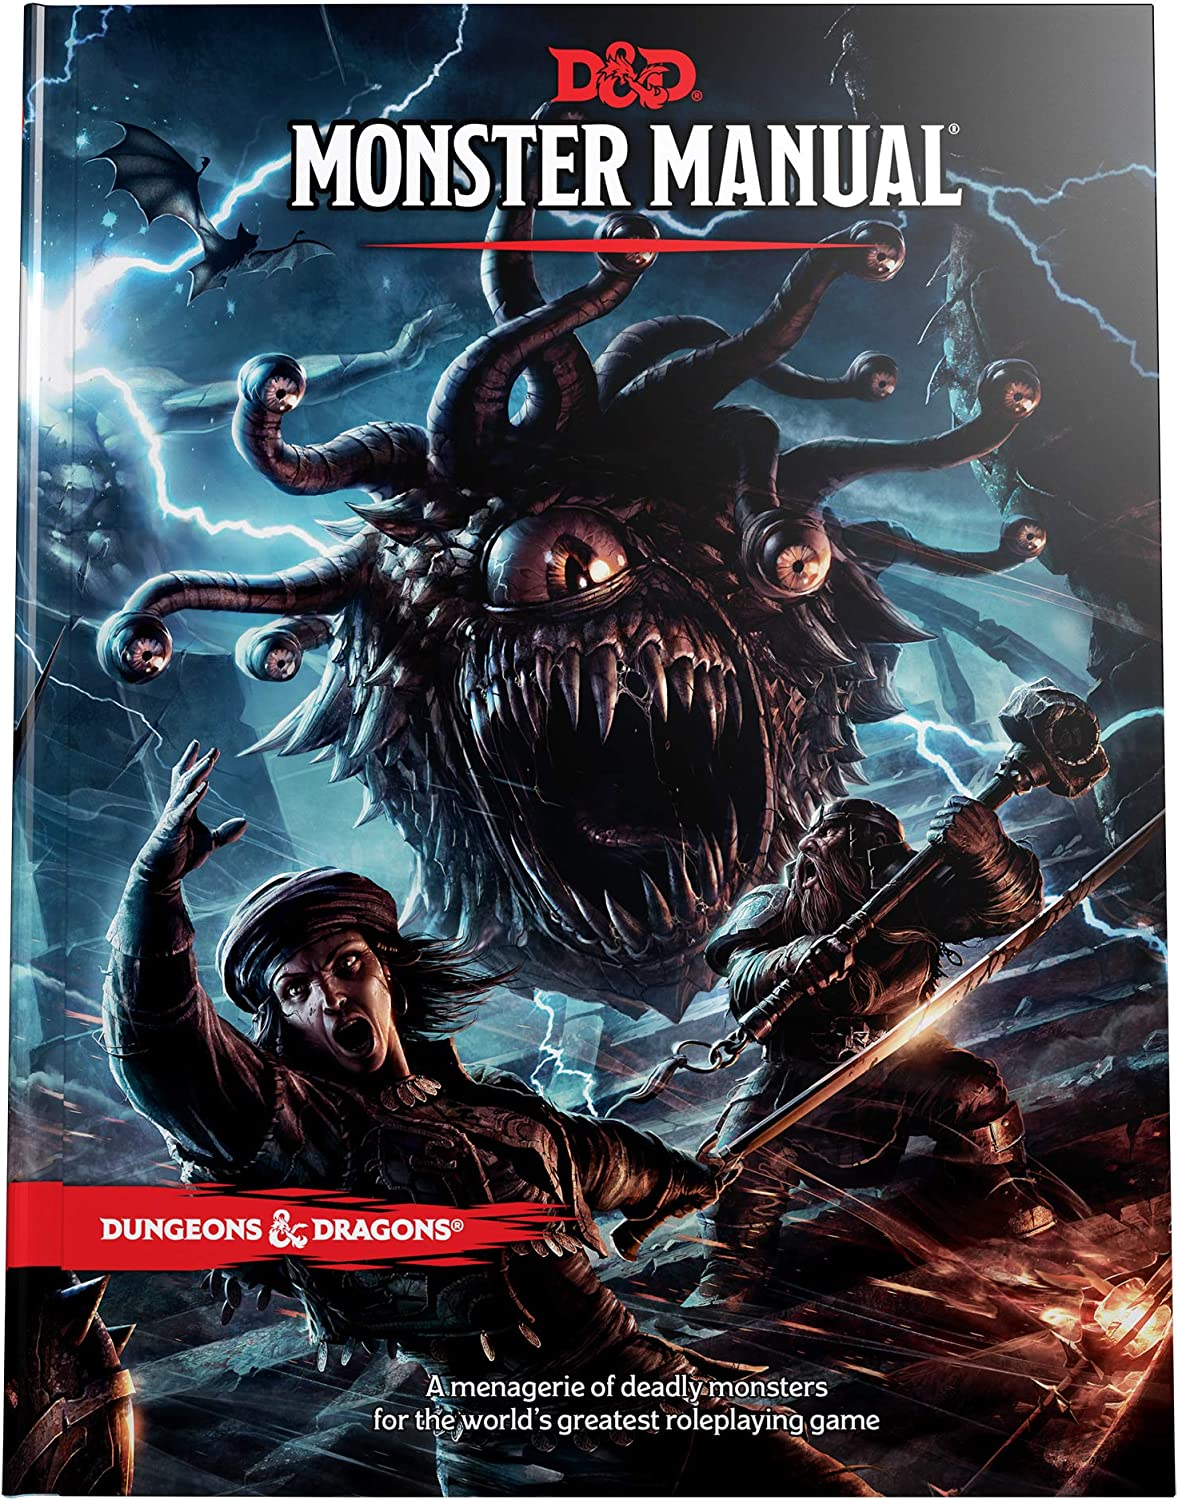 Dungeons & Dragons Core Rulebook: Monster Manual, WTCA92180000, standard:  Wizards of the Coast, Wizards of the Coast: Amazon.co.uk: Toys & Games